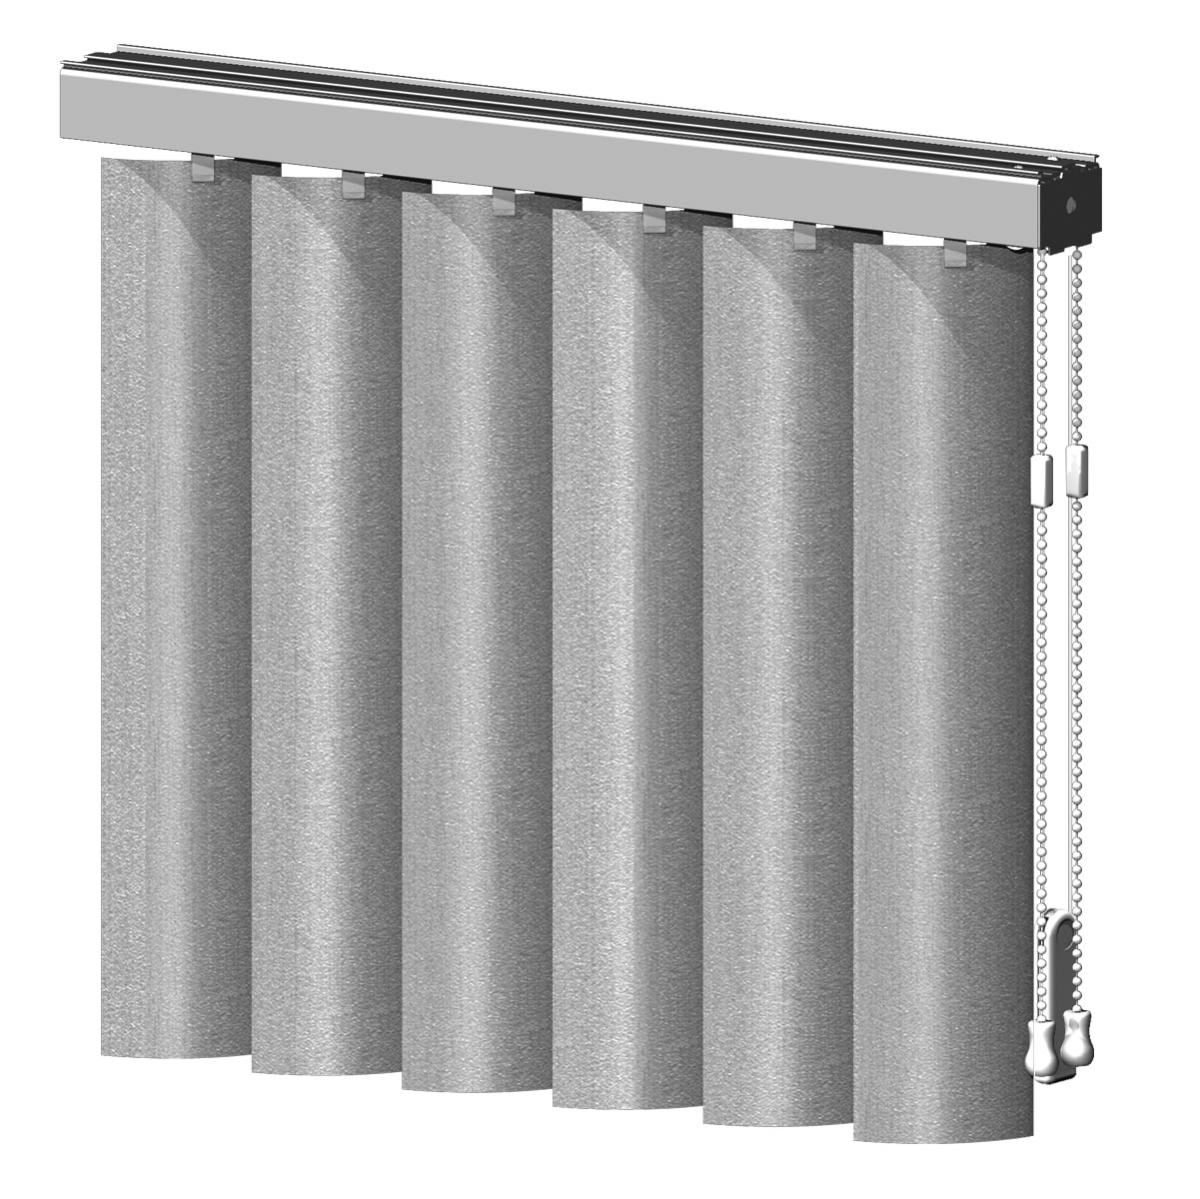 Graber vertical blinds fabric sheer vinyl - Sheer Vertical Blinds Combine The Flowing Appearance Of Drapery And The Practicality Of Easy Light Control When Rotated Open Vinyl Vanes Draped In Sheer